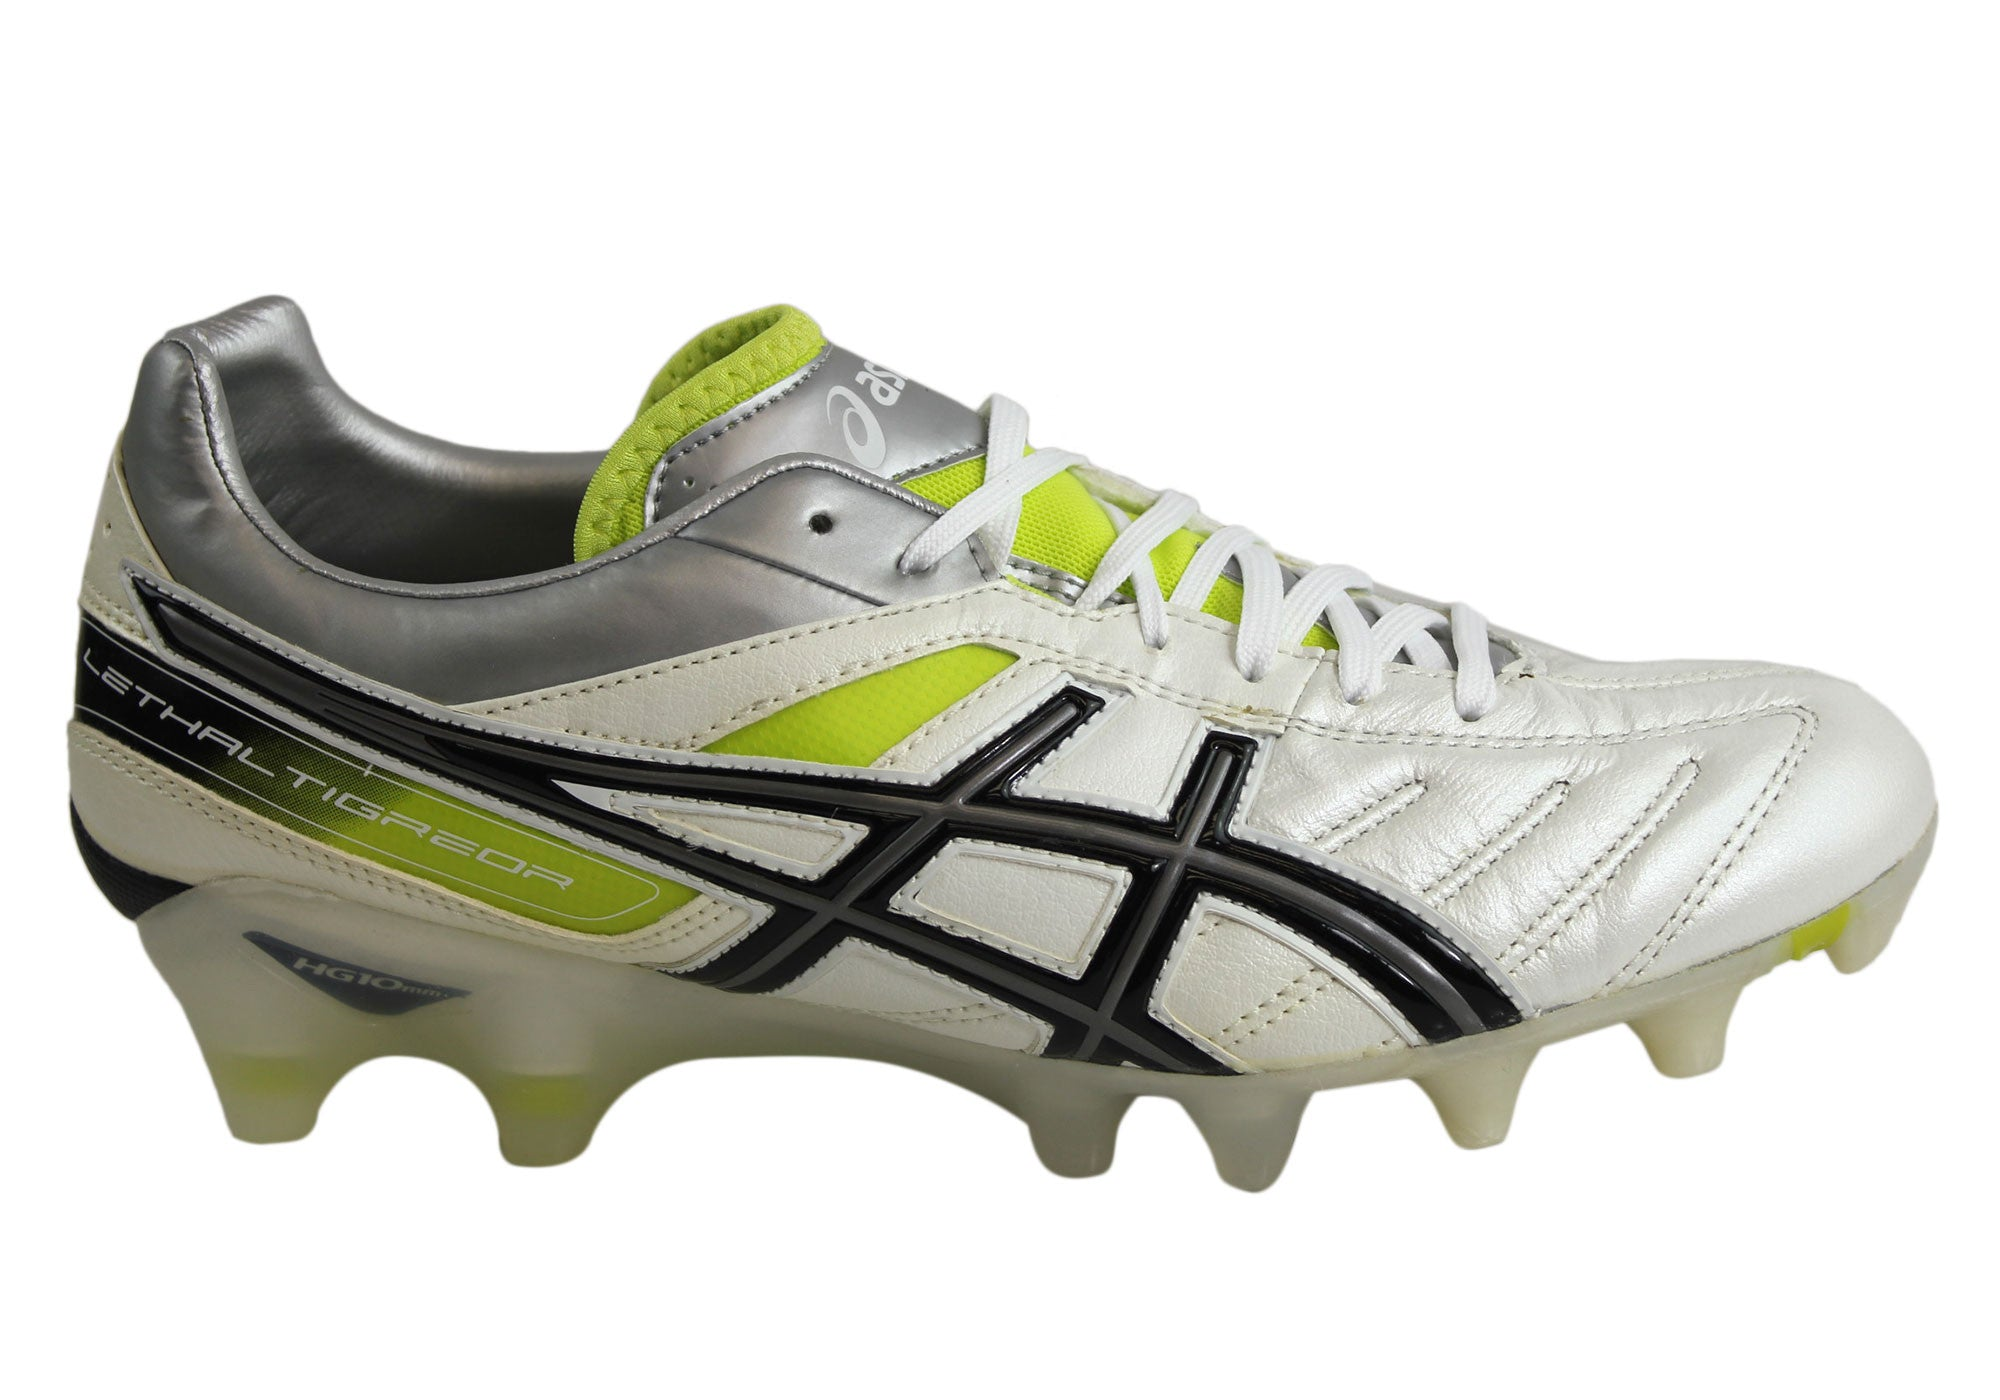 08320892e Asics Lethal Tigreor 4 It Mens Premium Leather Football Boots ...